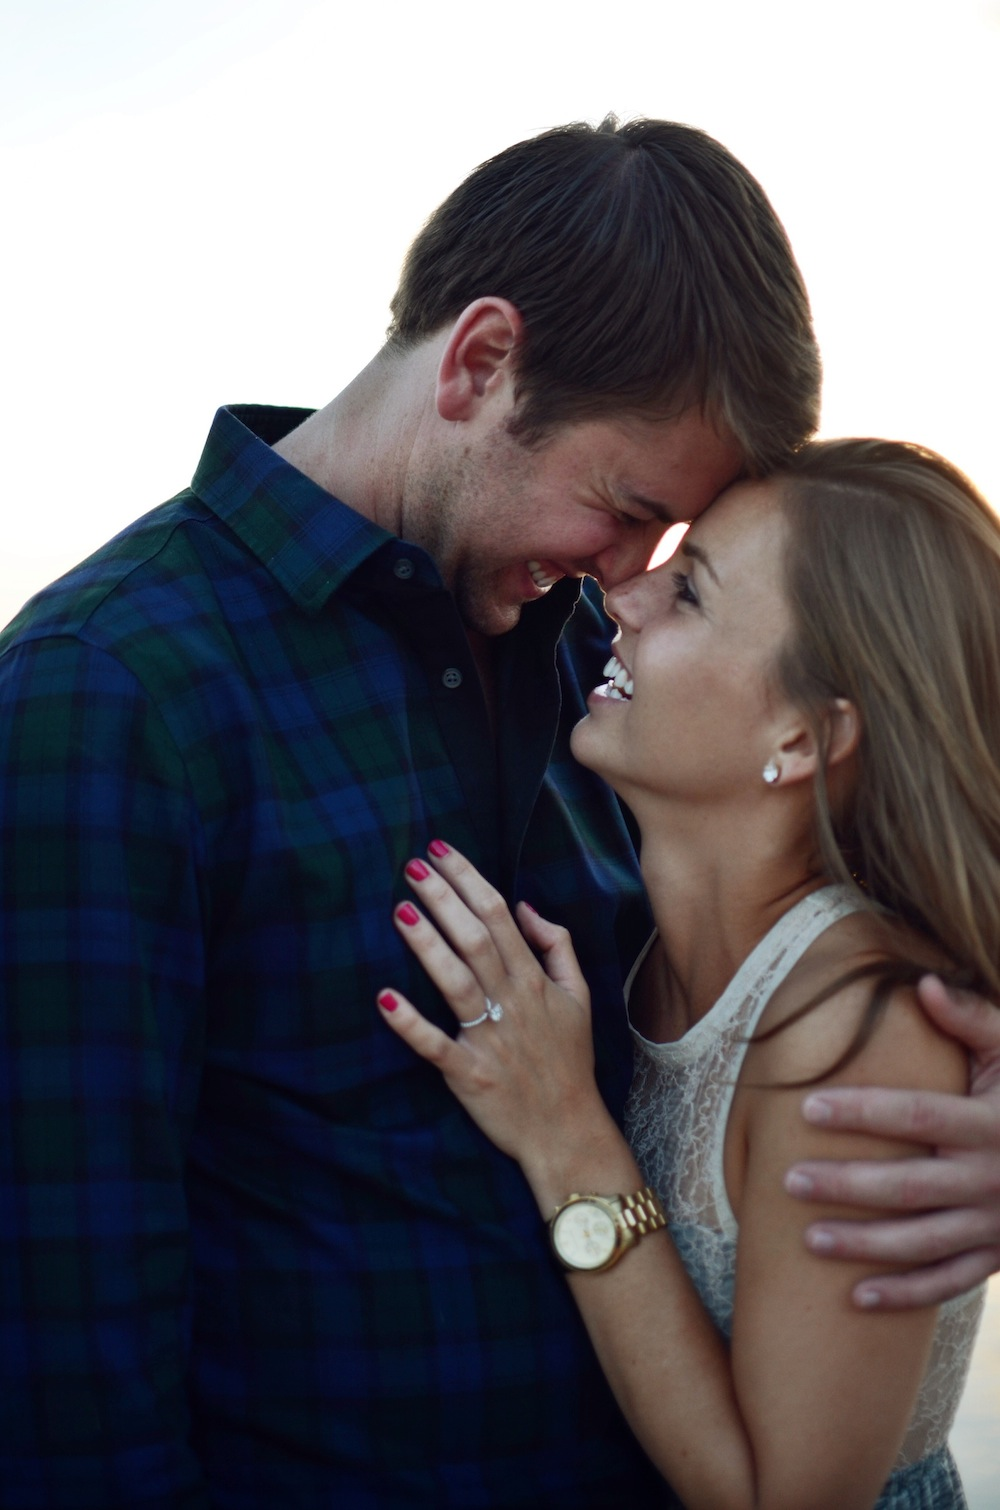 Image 2 of Cute Engagement Photo Ideas and Poses: Find Inspiration for Your Own Shoot!